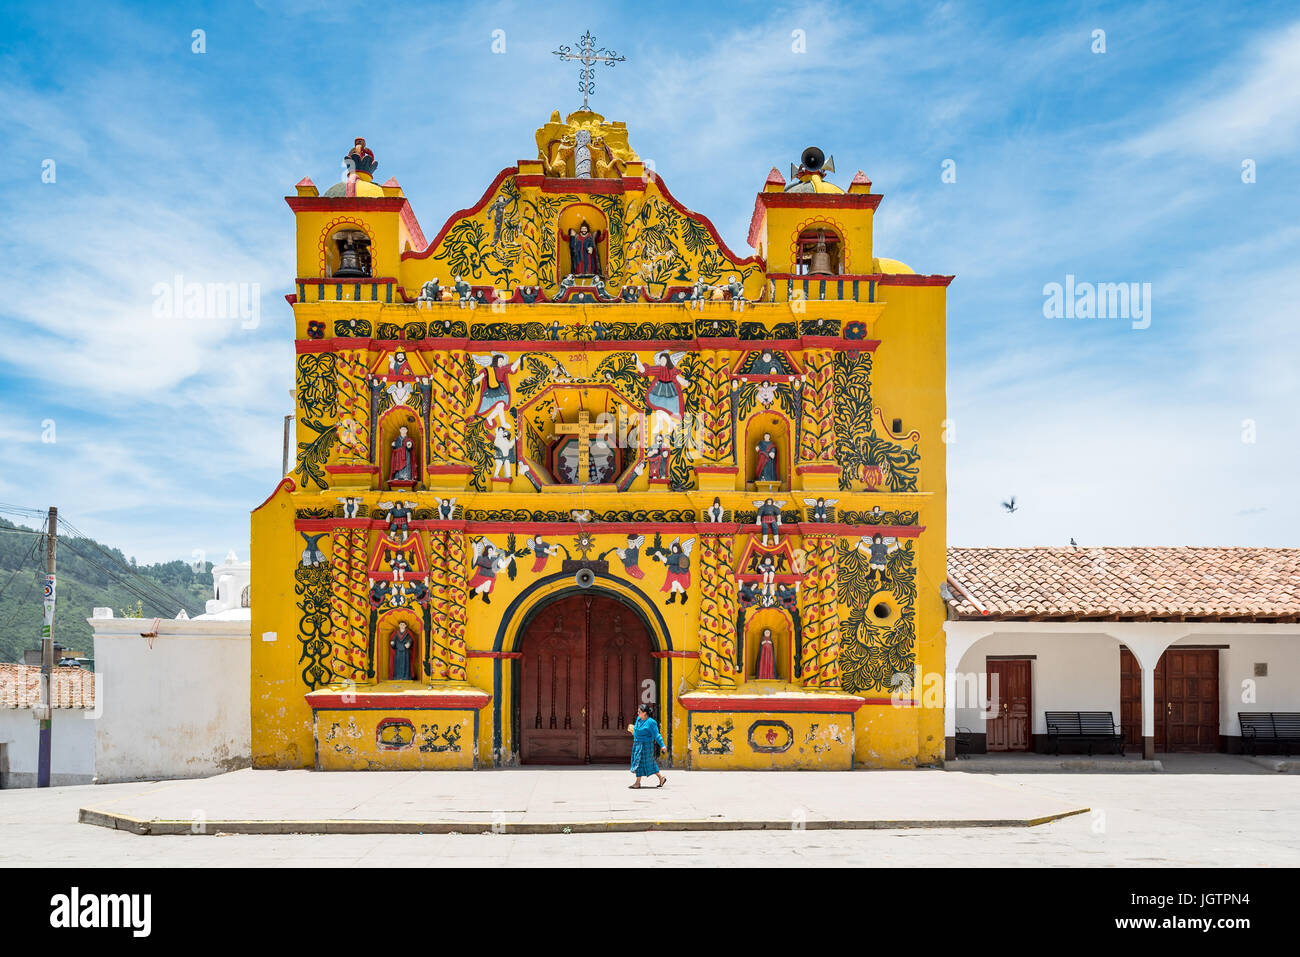 A small village in the Western Highlands of Guatemala, San Andrés Xecul is home to a brightly-painted Catholic - Stock Image